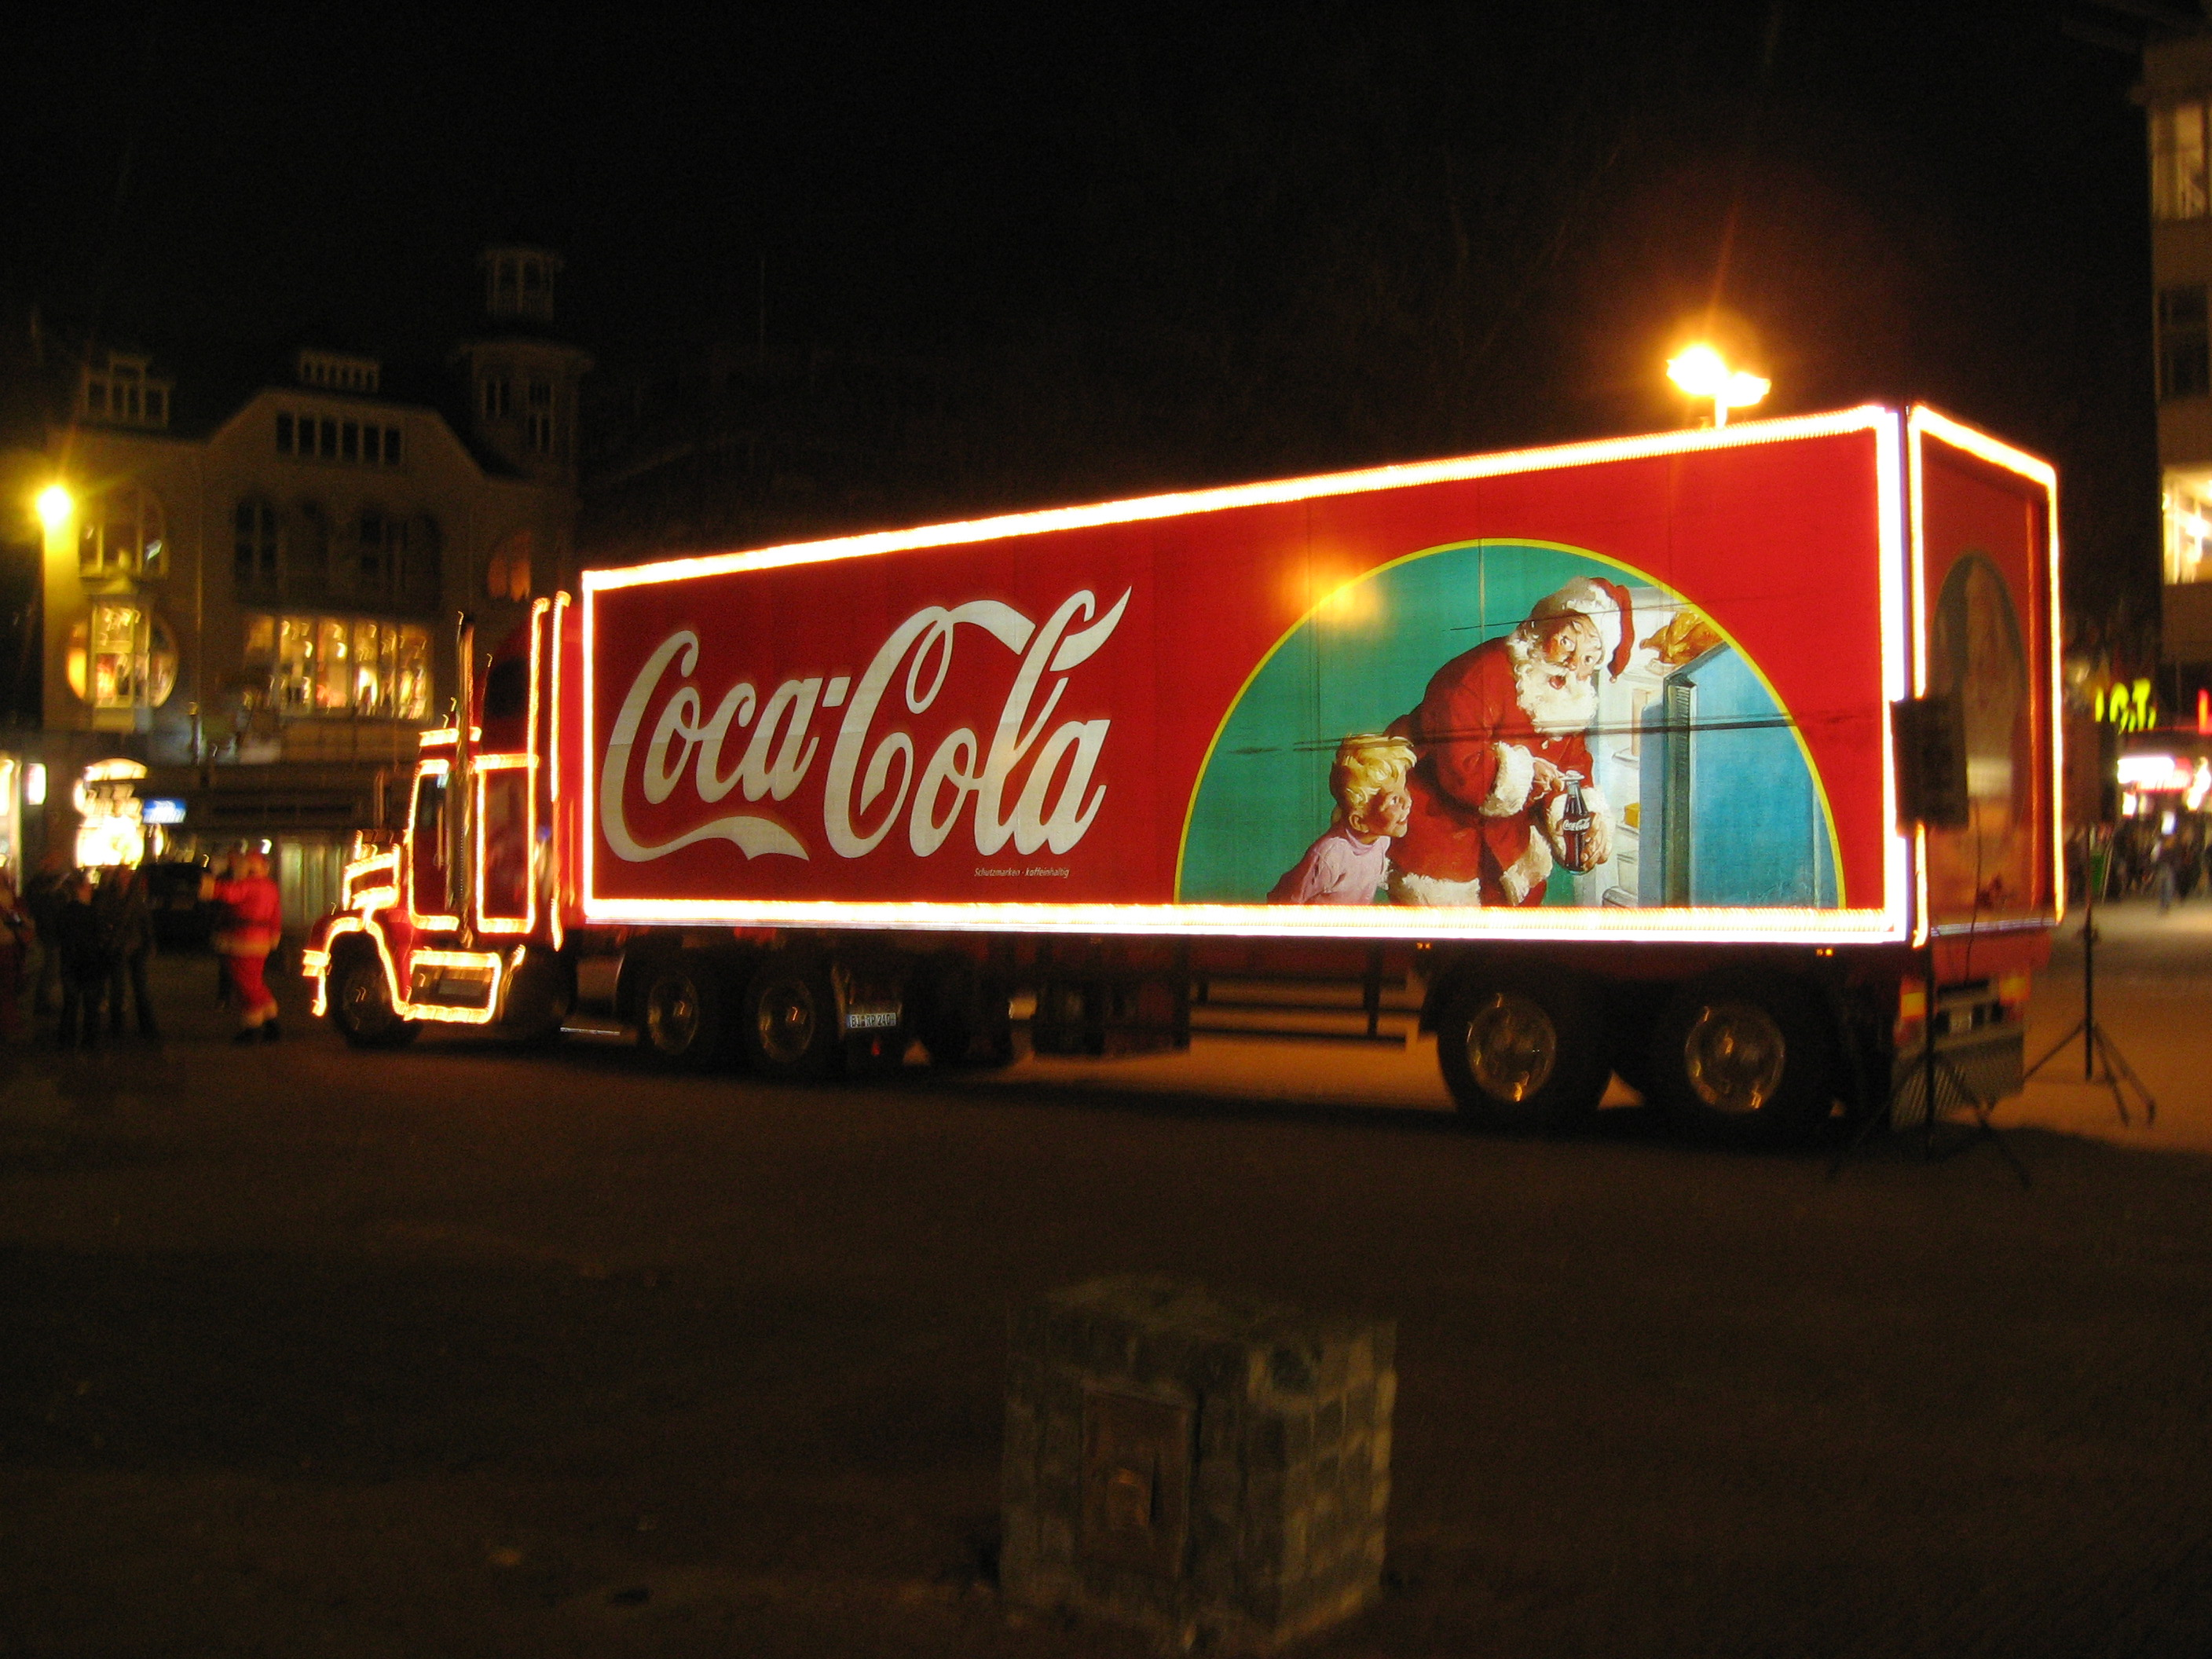 Christmas Coke Advert Coca-cola_truck